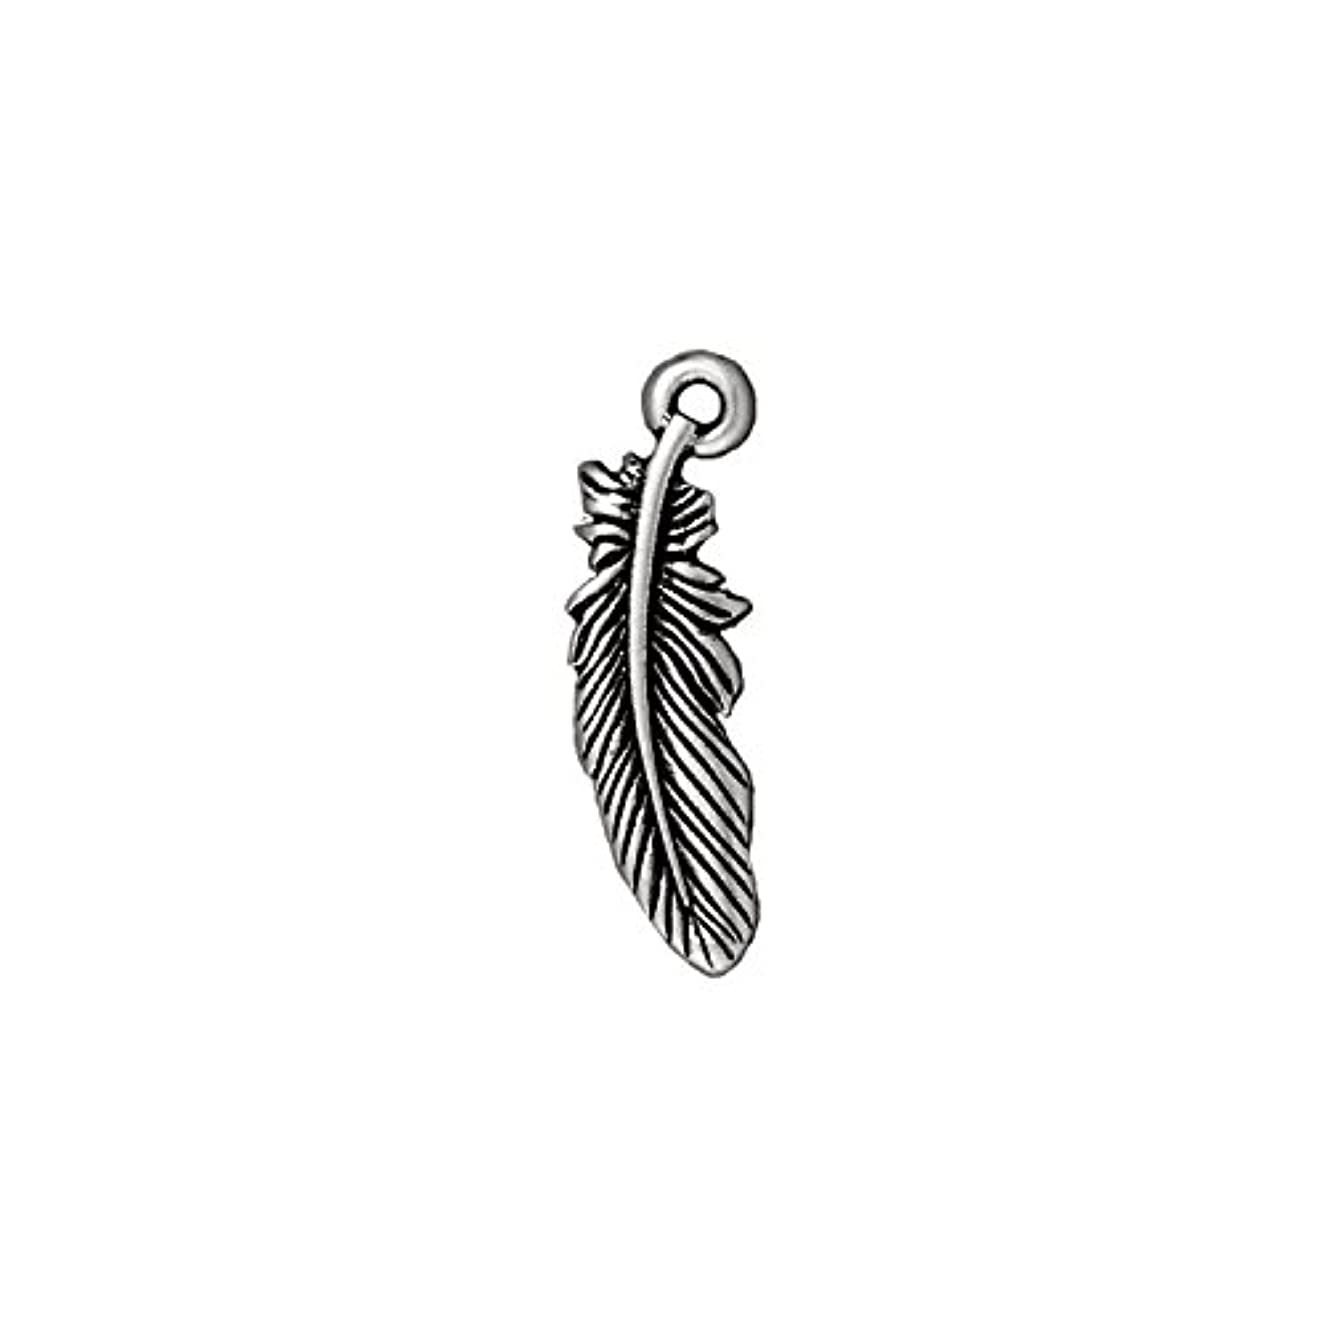 TierraCast Charm Feather, 23mm, Antique Fine Silver Plated Pewter, 4-Pack